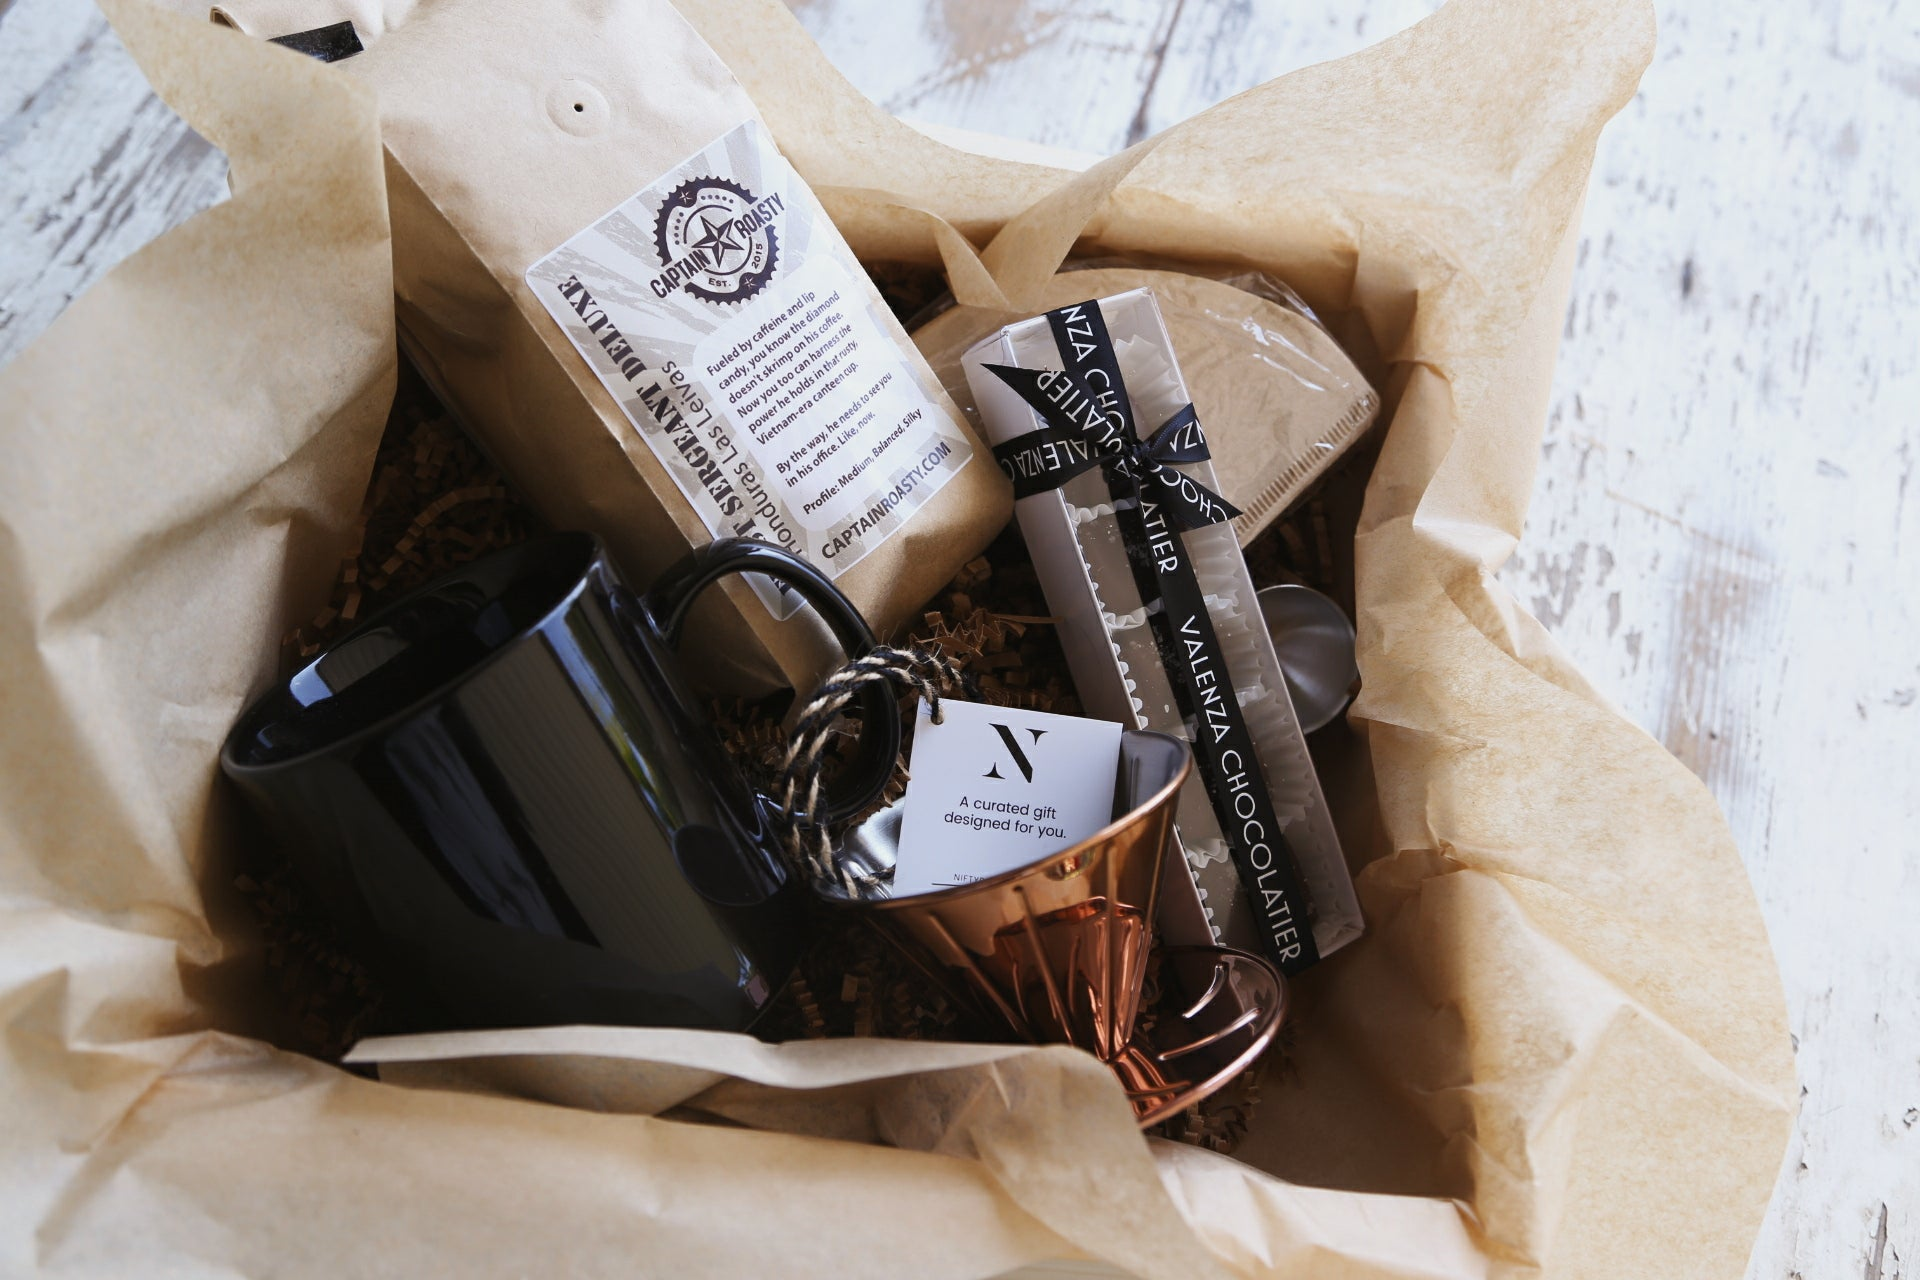 Caramels & Pour Over: this modern set contains decadent Valenza salted caramels, veteran-owned Captain Roasty coffee, sleek mug & copper pour over kit complete with filters & measure. $65